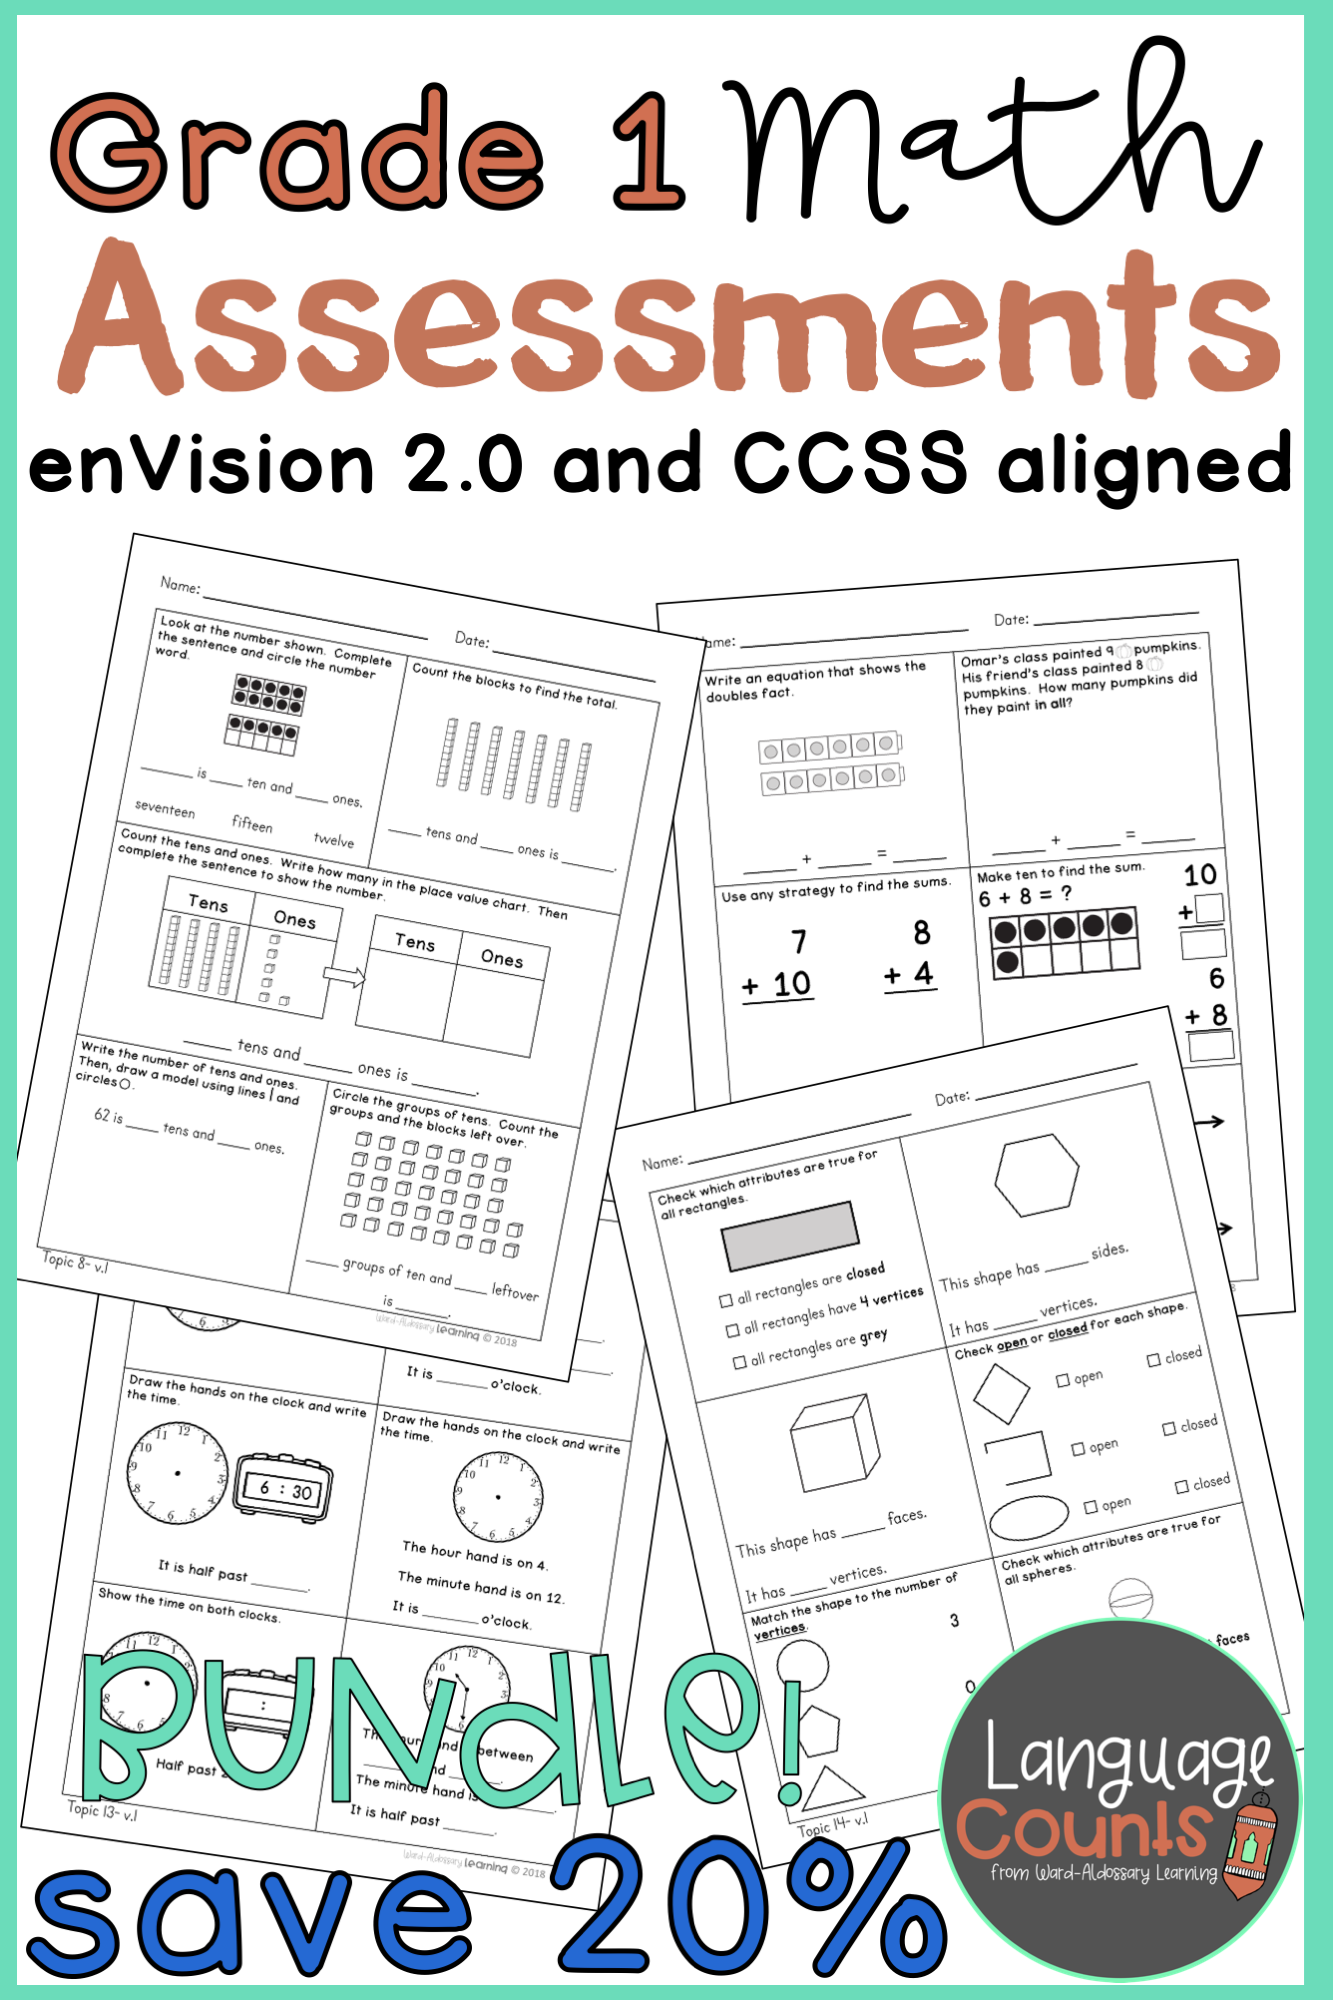 Alternative Assessments For All Grade 1 Envisionmath 2 0 Topics Assessments Cover All Ccss Math Standards For Grade Math Assessment Ccss Math 1st Grade Math [ 2000 x 1333 Pixel ]